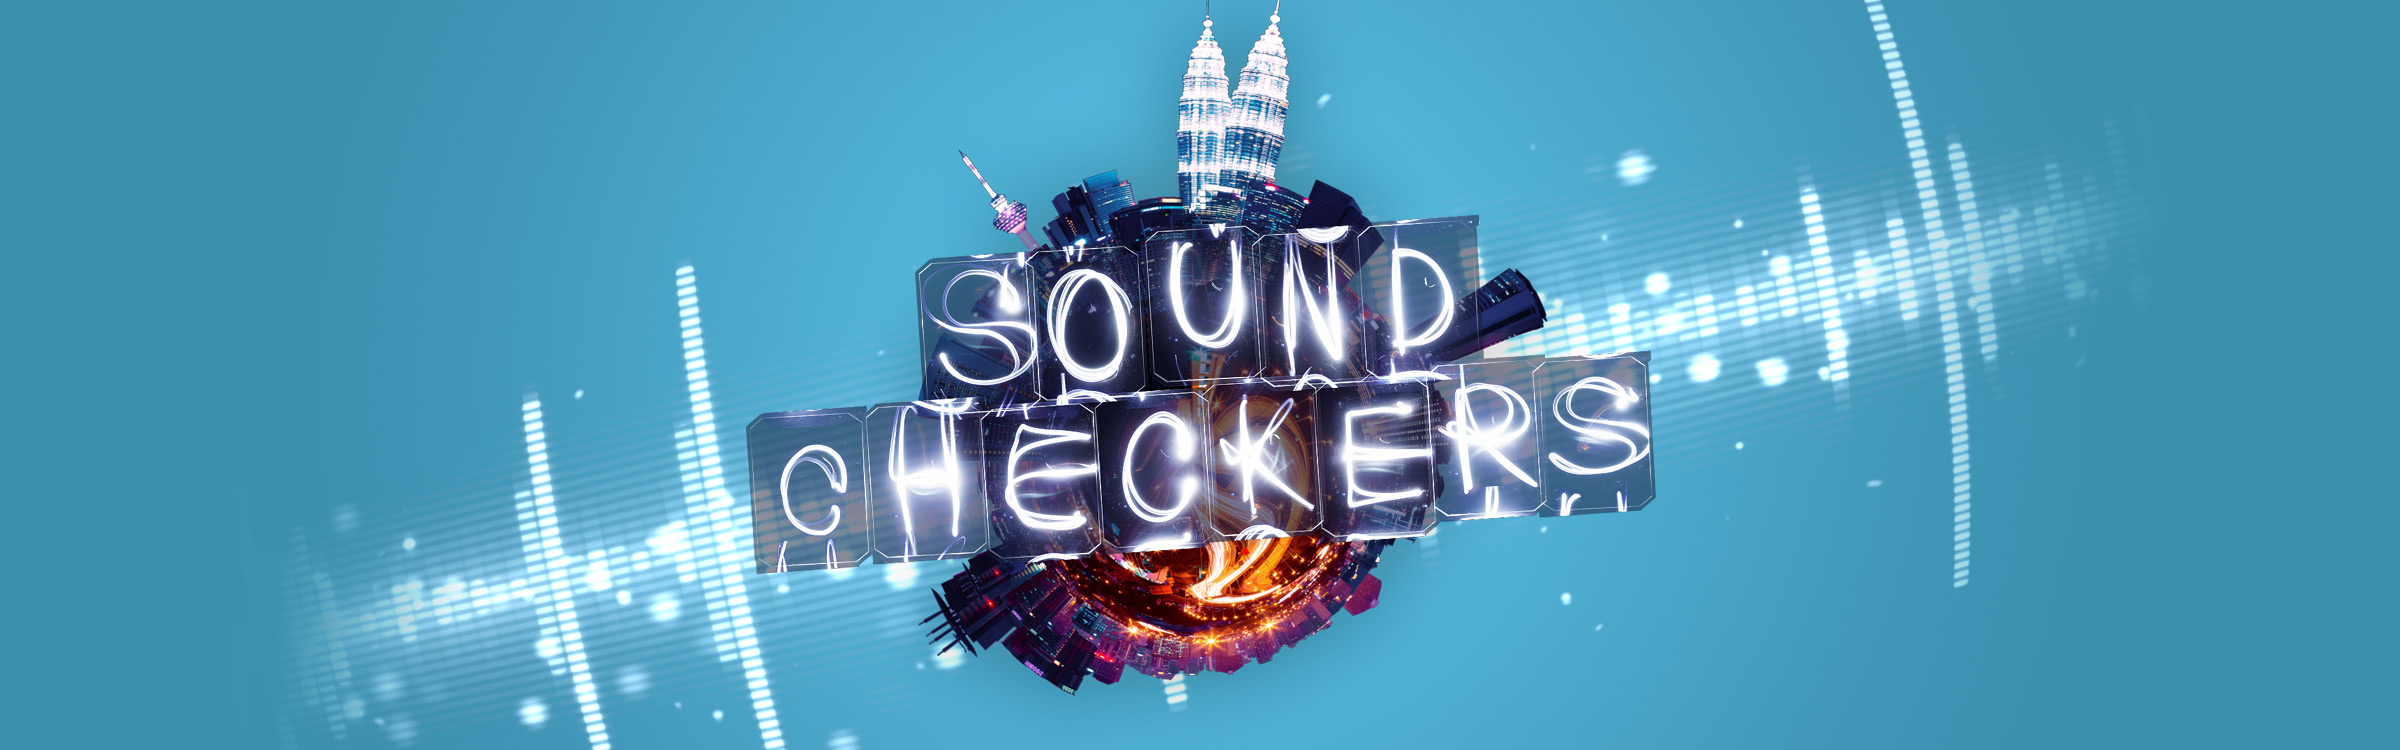 Qmusic actionheader soundcheckers